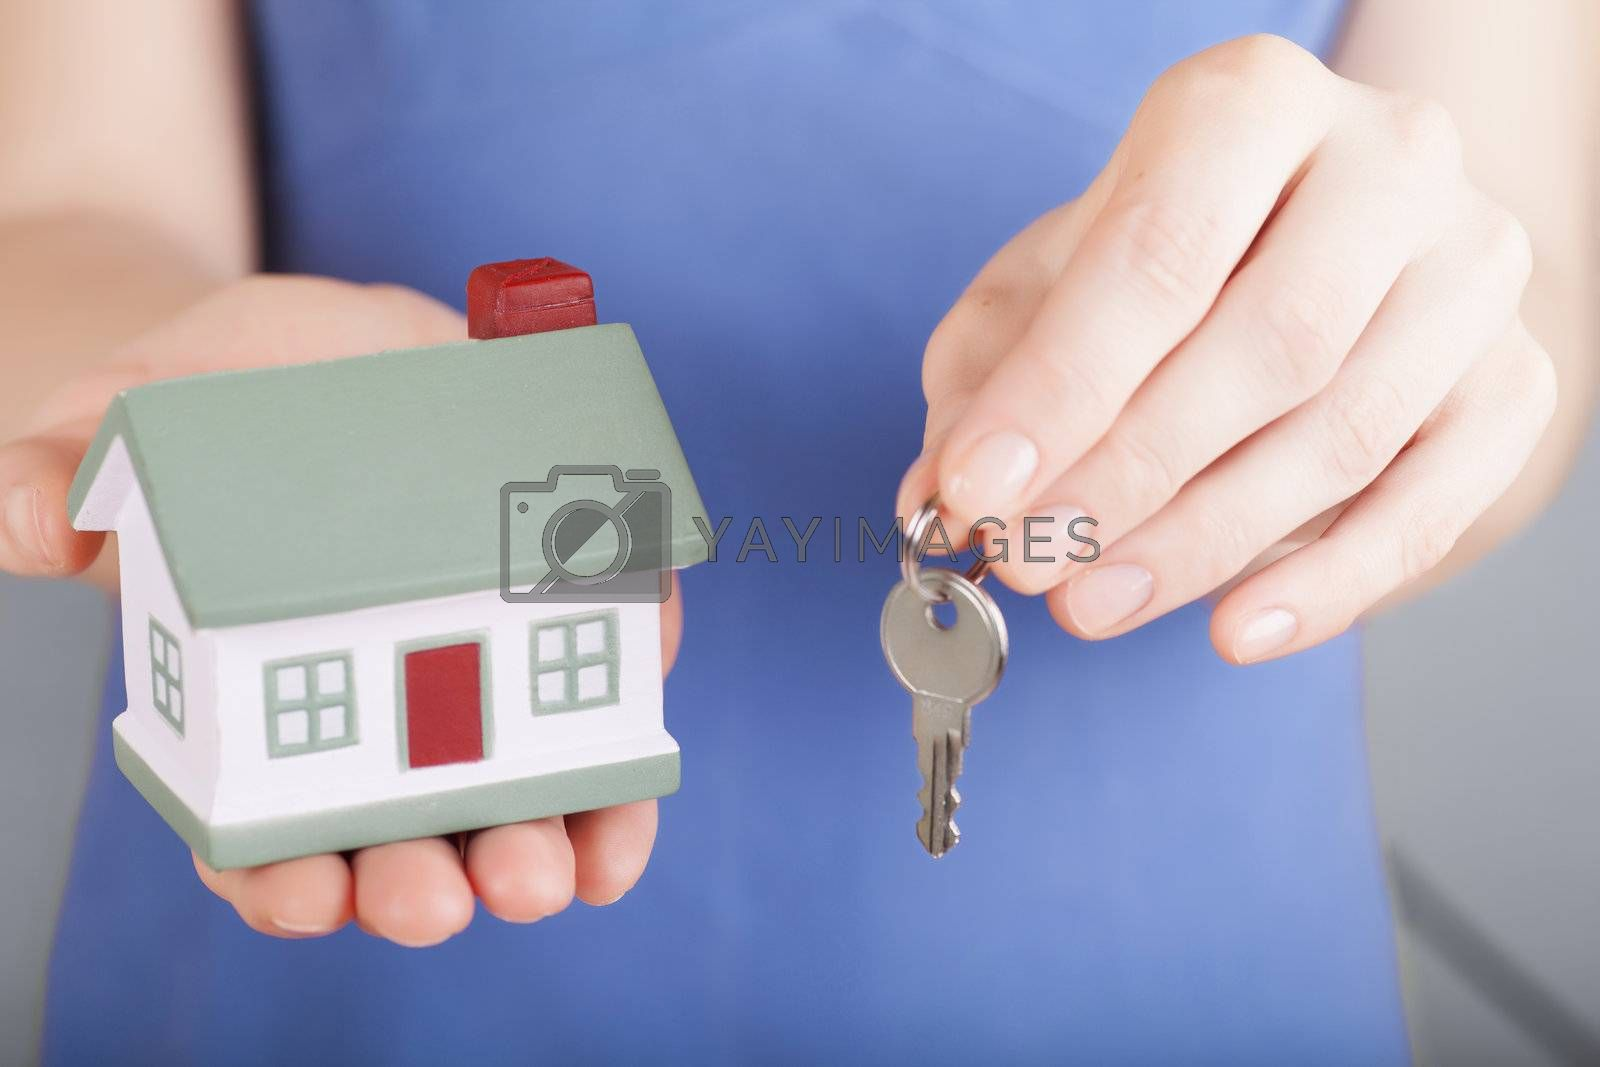 Little house toy and a key in woman's hands